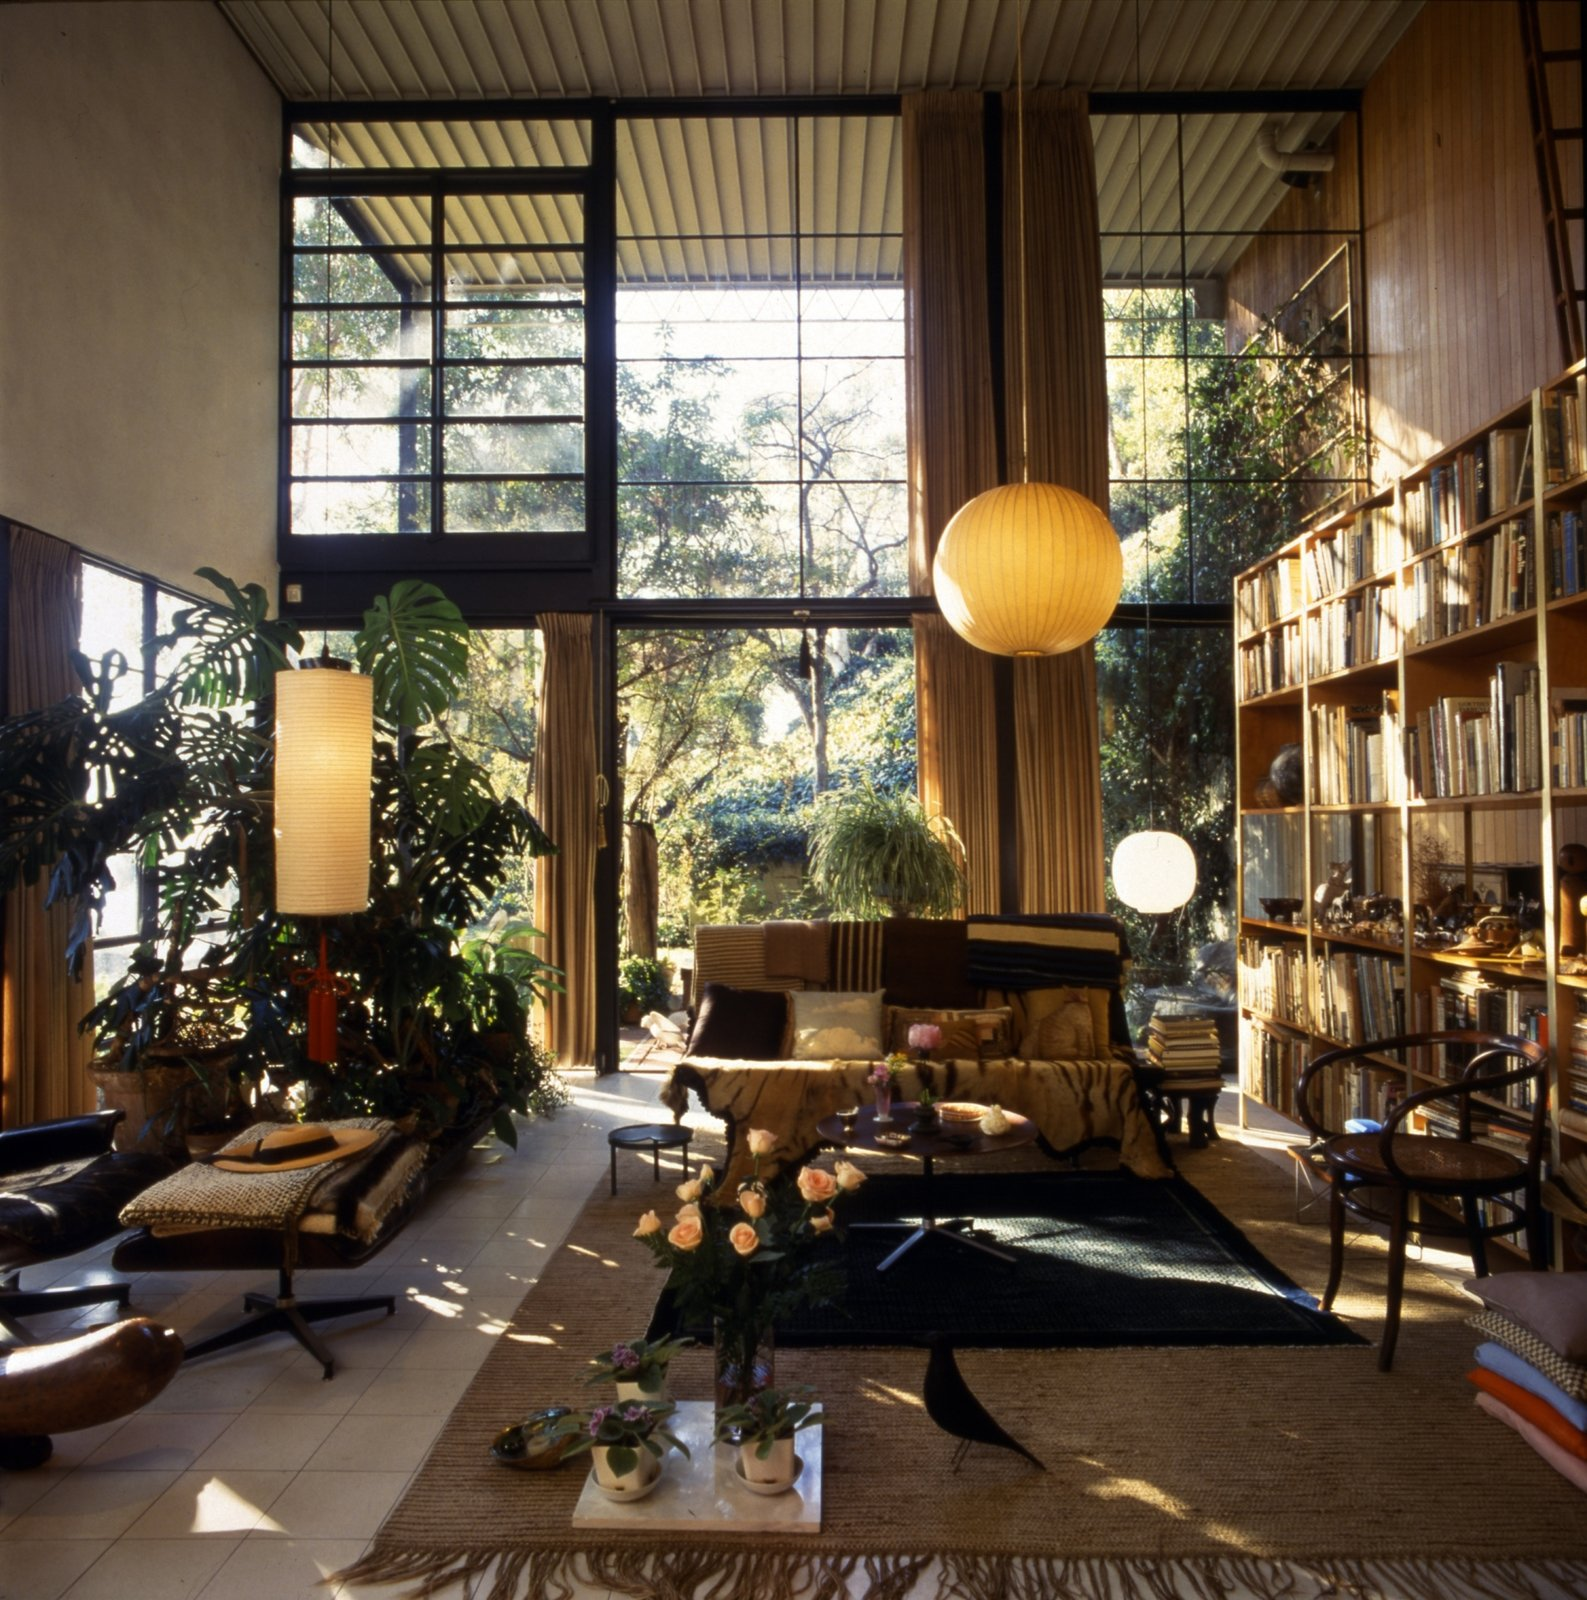 Living Room, Floor Lighting, Pendant Lighting, Coffee Tables, Chair, Sofa, Rug Floor, End Tables, Ceramic Tile Floor, and Bookcase In 1949, the Eameses designed and built their home in Pacific Palisades, California, as part of the Case Study House Program, and it has since become an icon of post-war residential design.  Photo 3 of 8 in Catch 'The World of Charles and Ray Eames' at the End of its Tour in Oakland